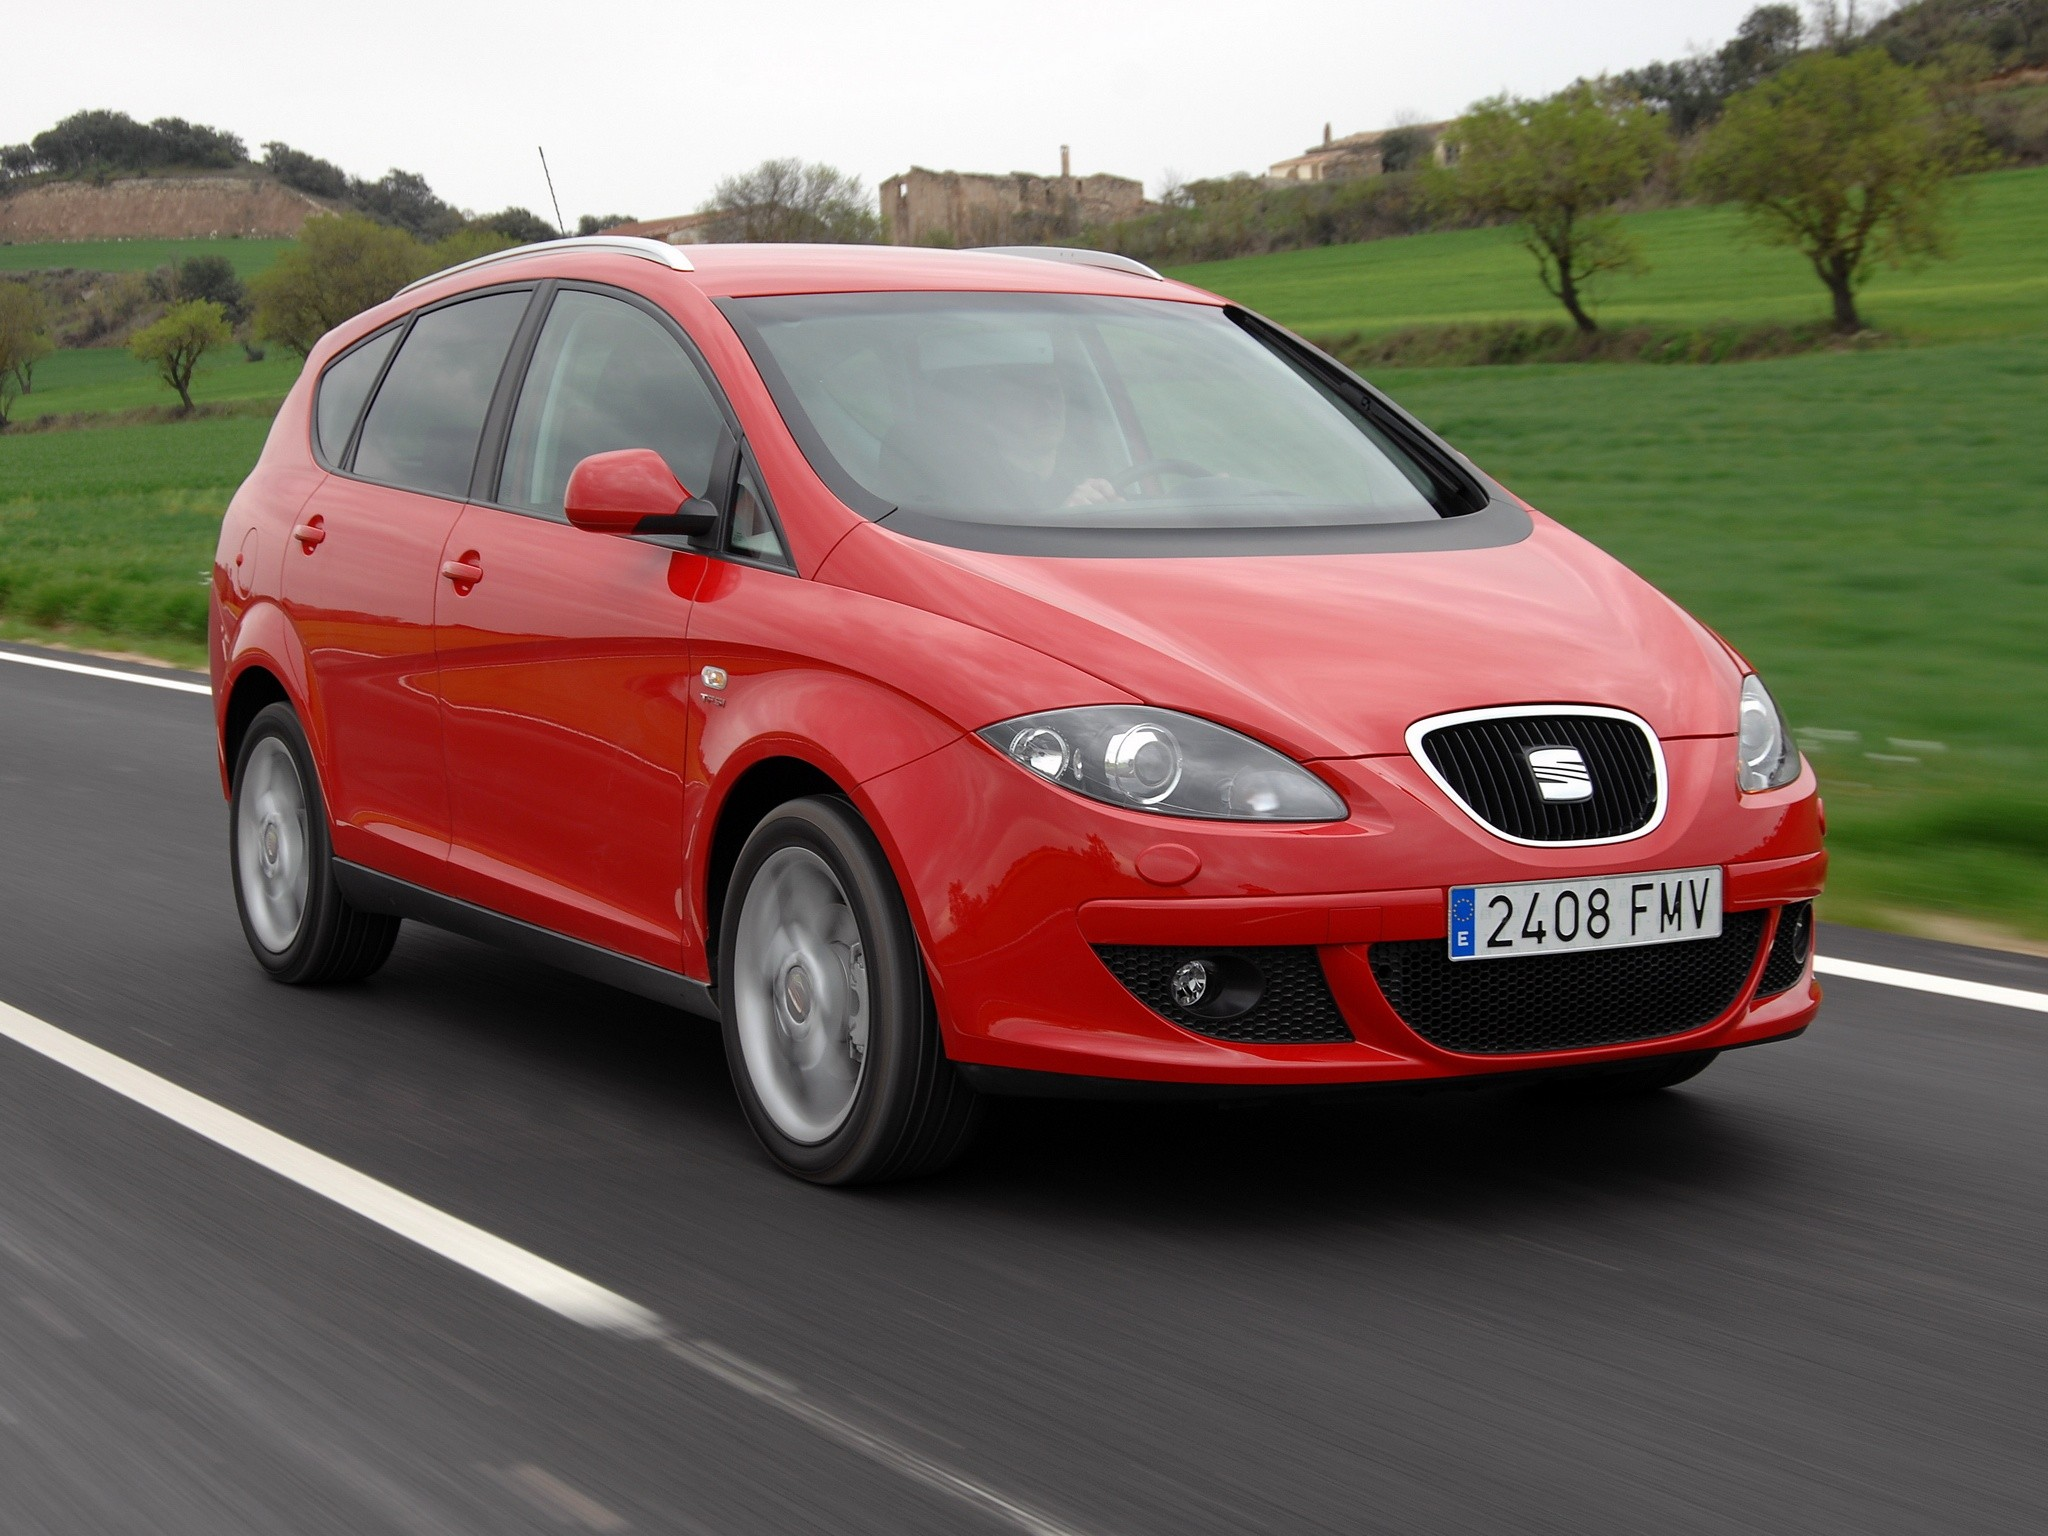 Seat altea photo - 4